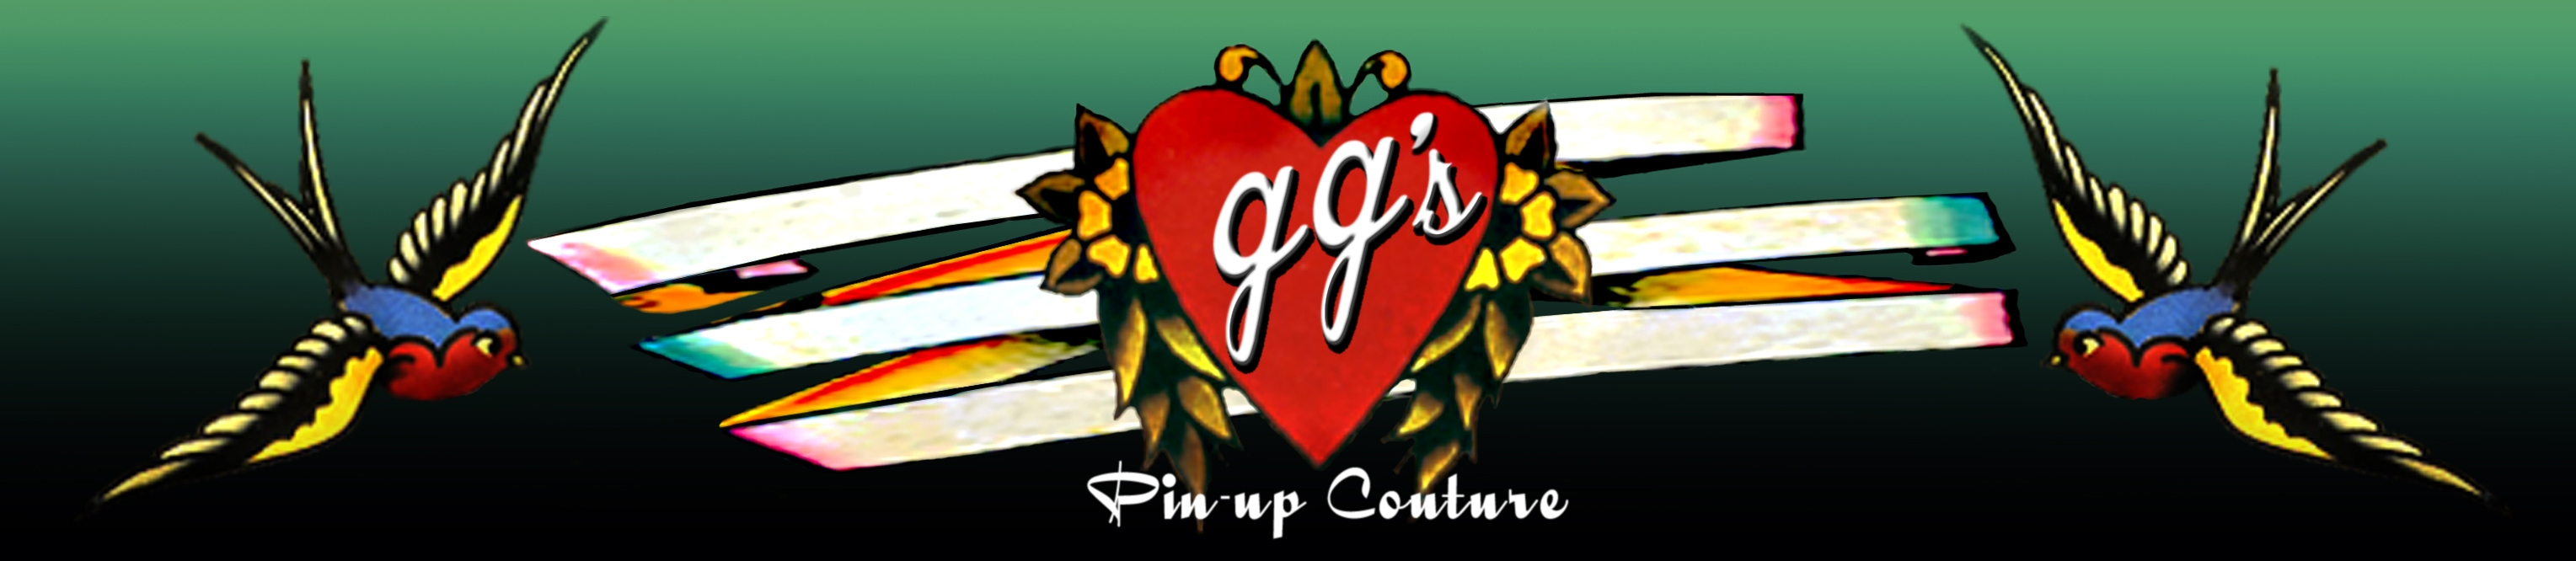 GG's Pin-up Couture